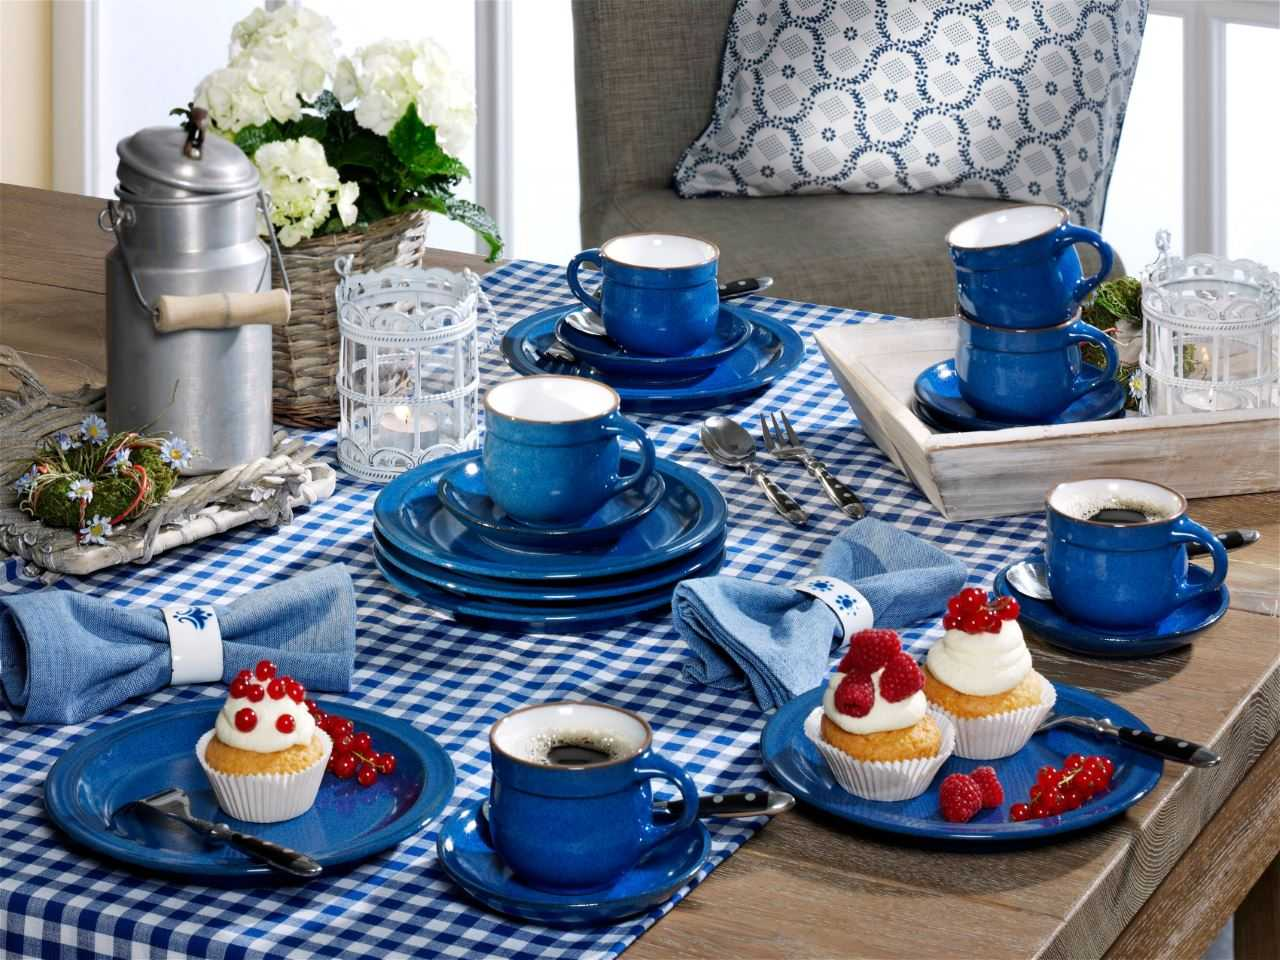 friesland ammerland blue angebot kaffeeservice kochen essen wohnen. Black Bedroom Furniture Sets. Home Design Ideas